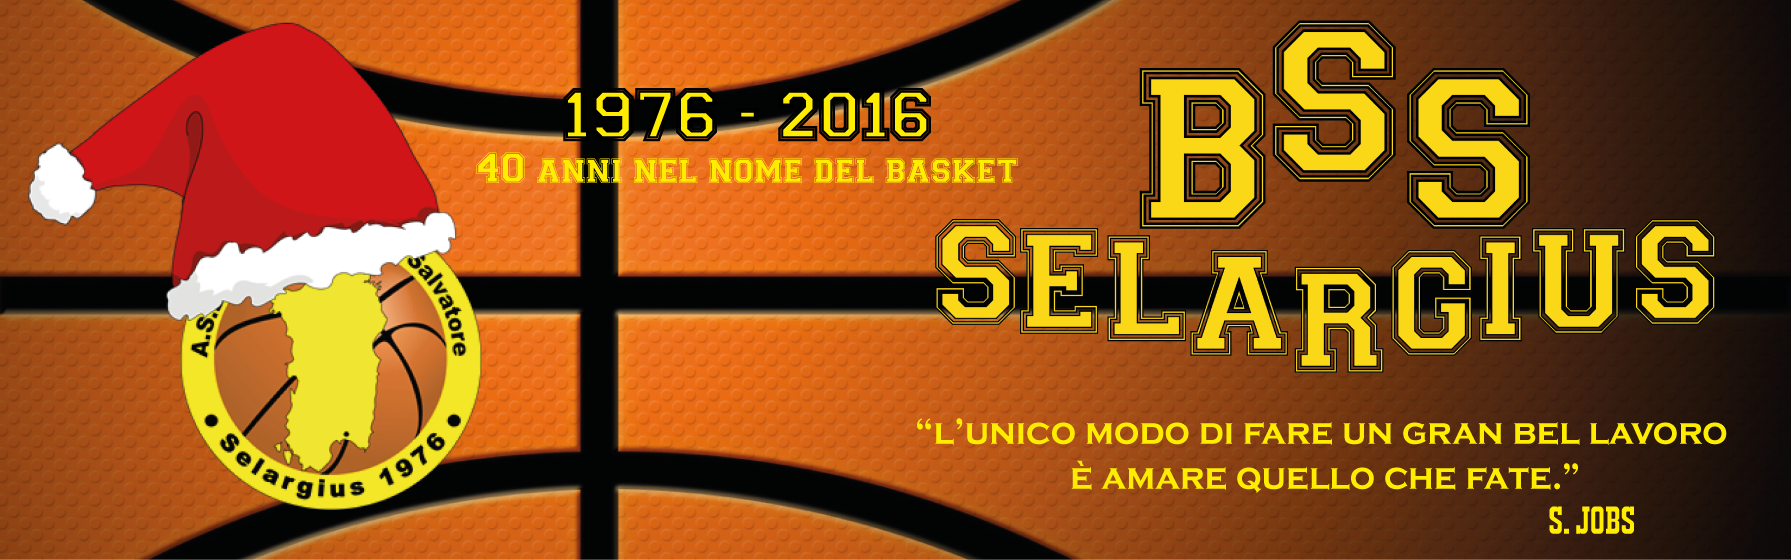 http://www.basketsansalvatore.it/wp/wp-content/uploads/2019/12/A-Test-sfondo-sito-e-fb-rev.-1-natale.png